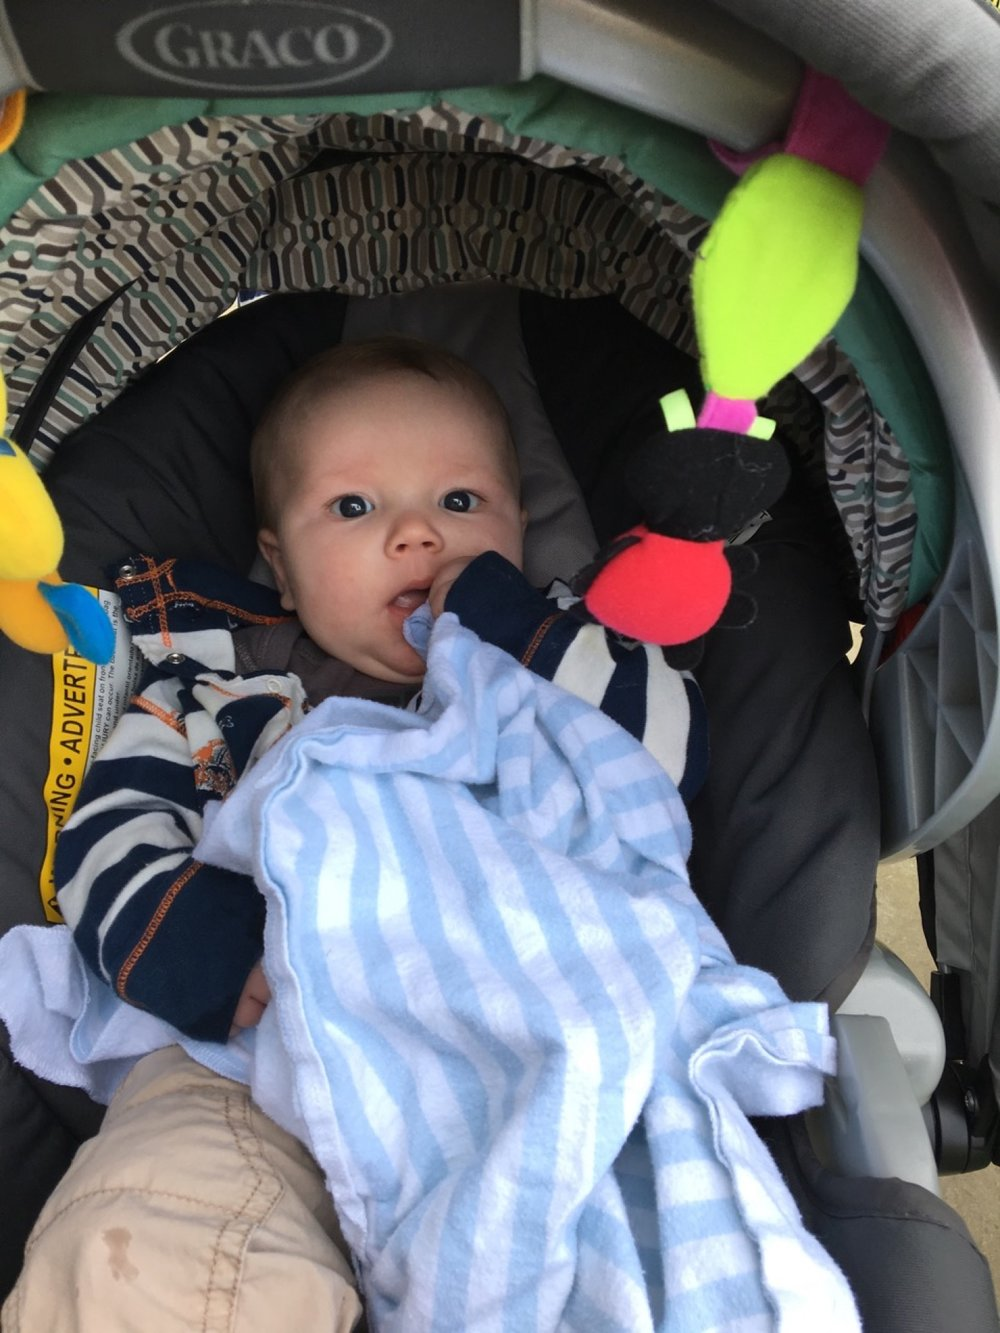 Loves his carseat bugs